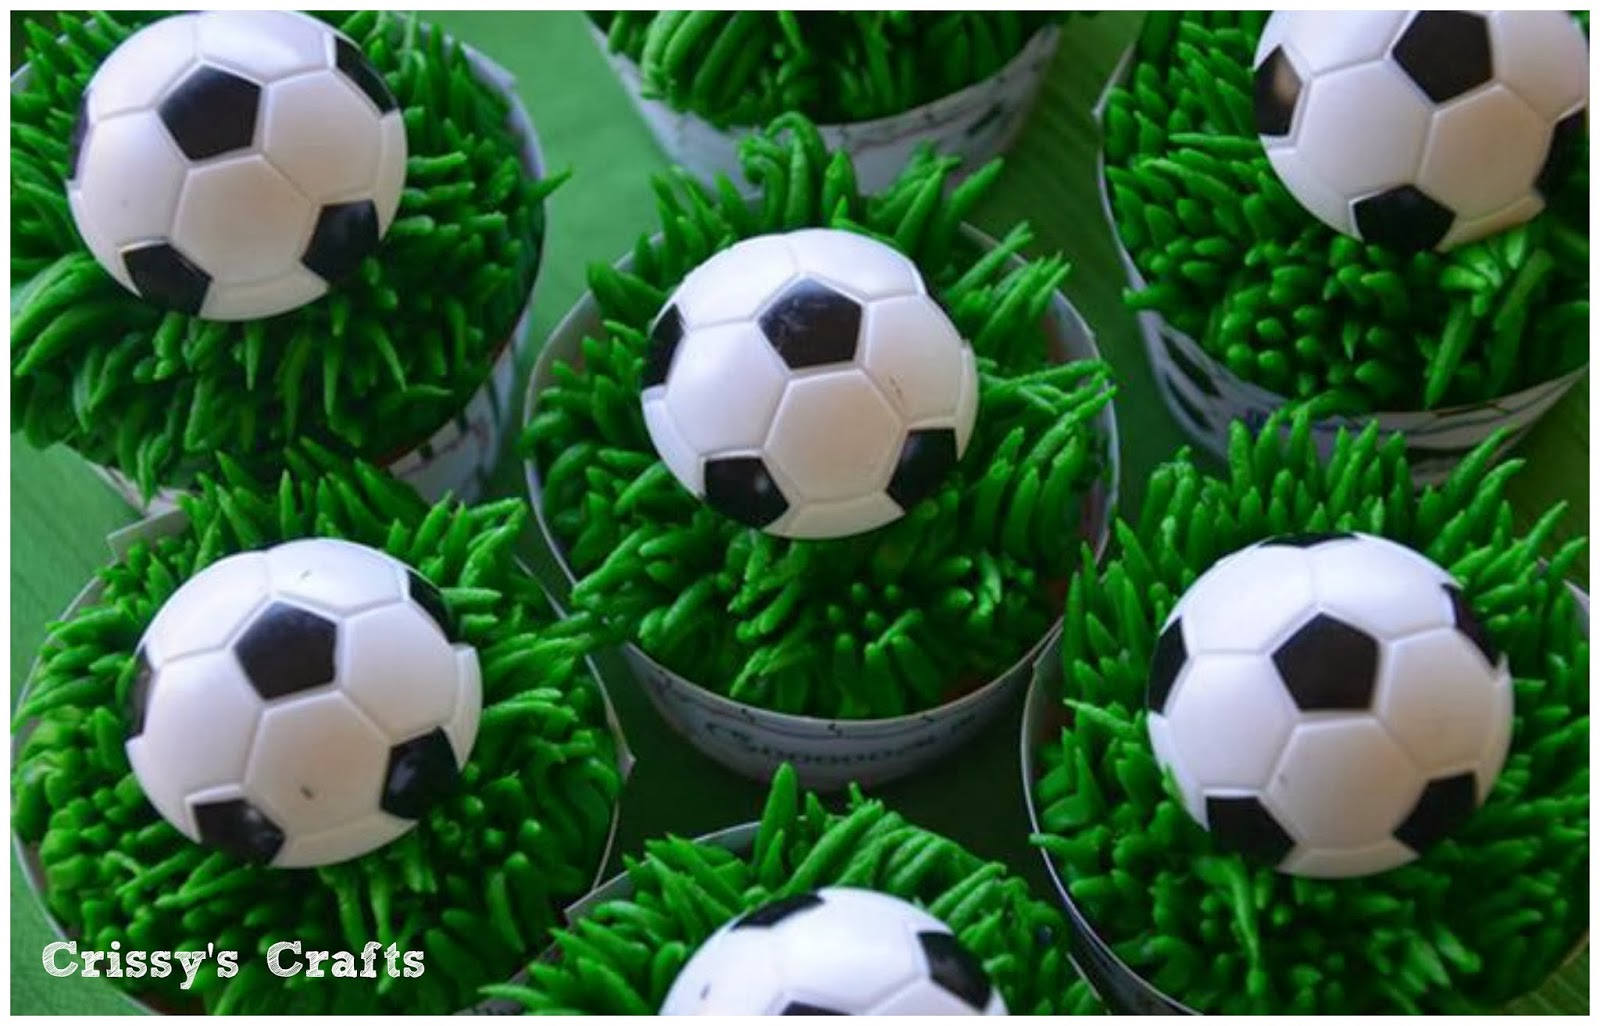 Soccer ball craft ideas - End Of The Season Soccer Party